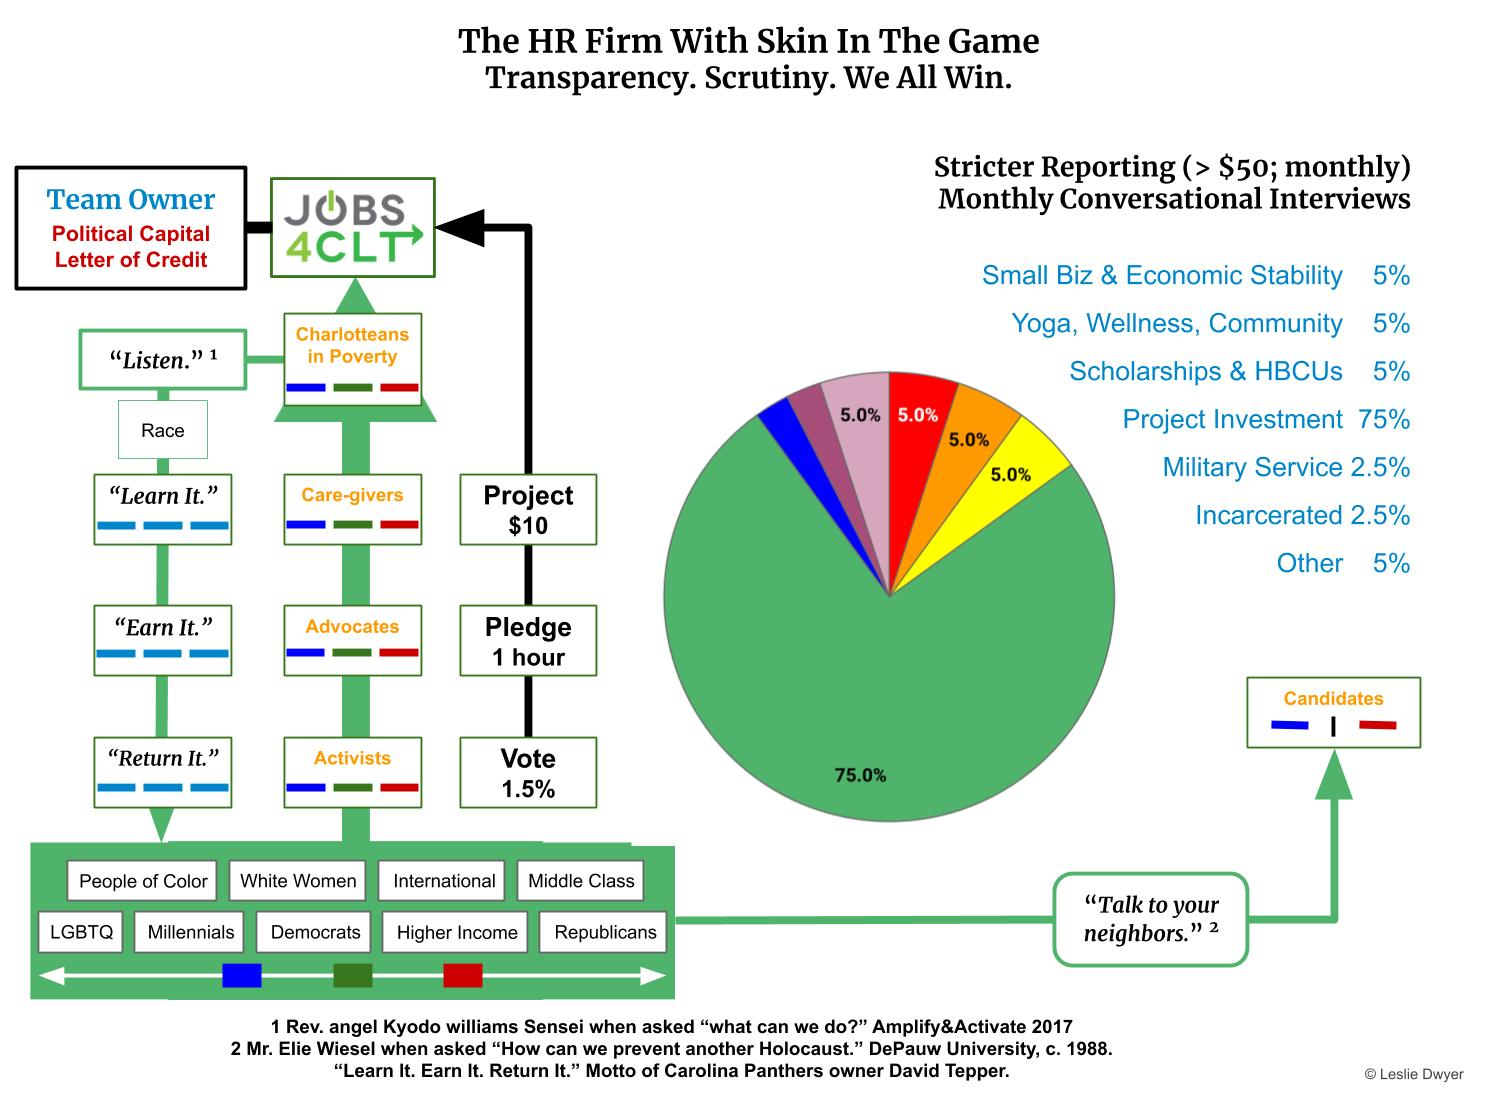 Copy of HR Firm with Skin in the Game.